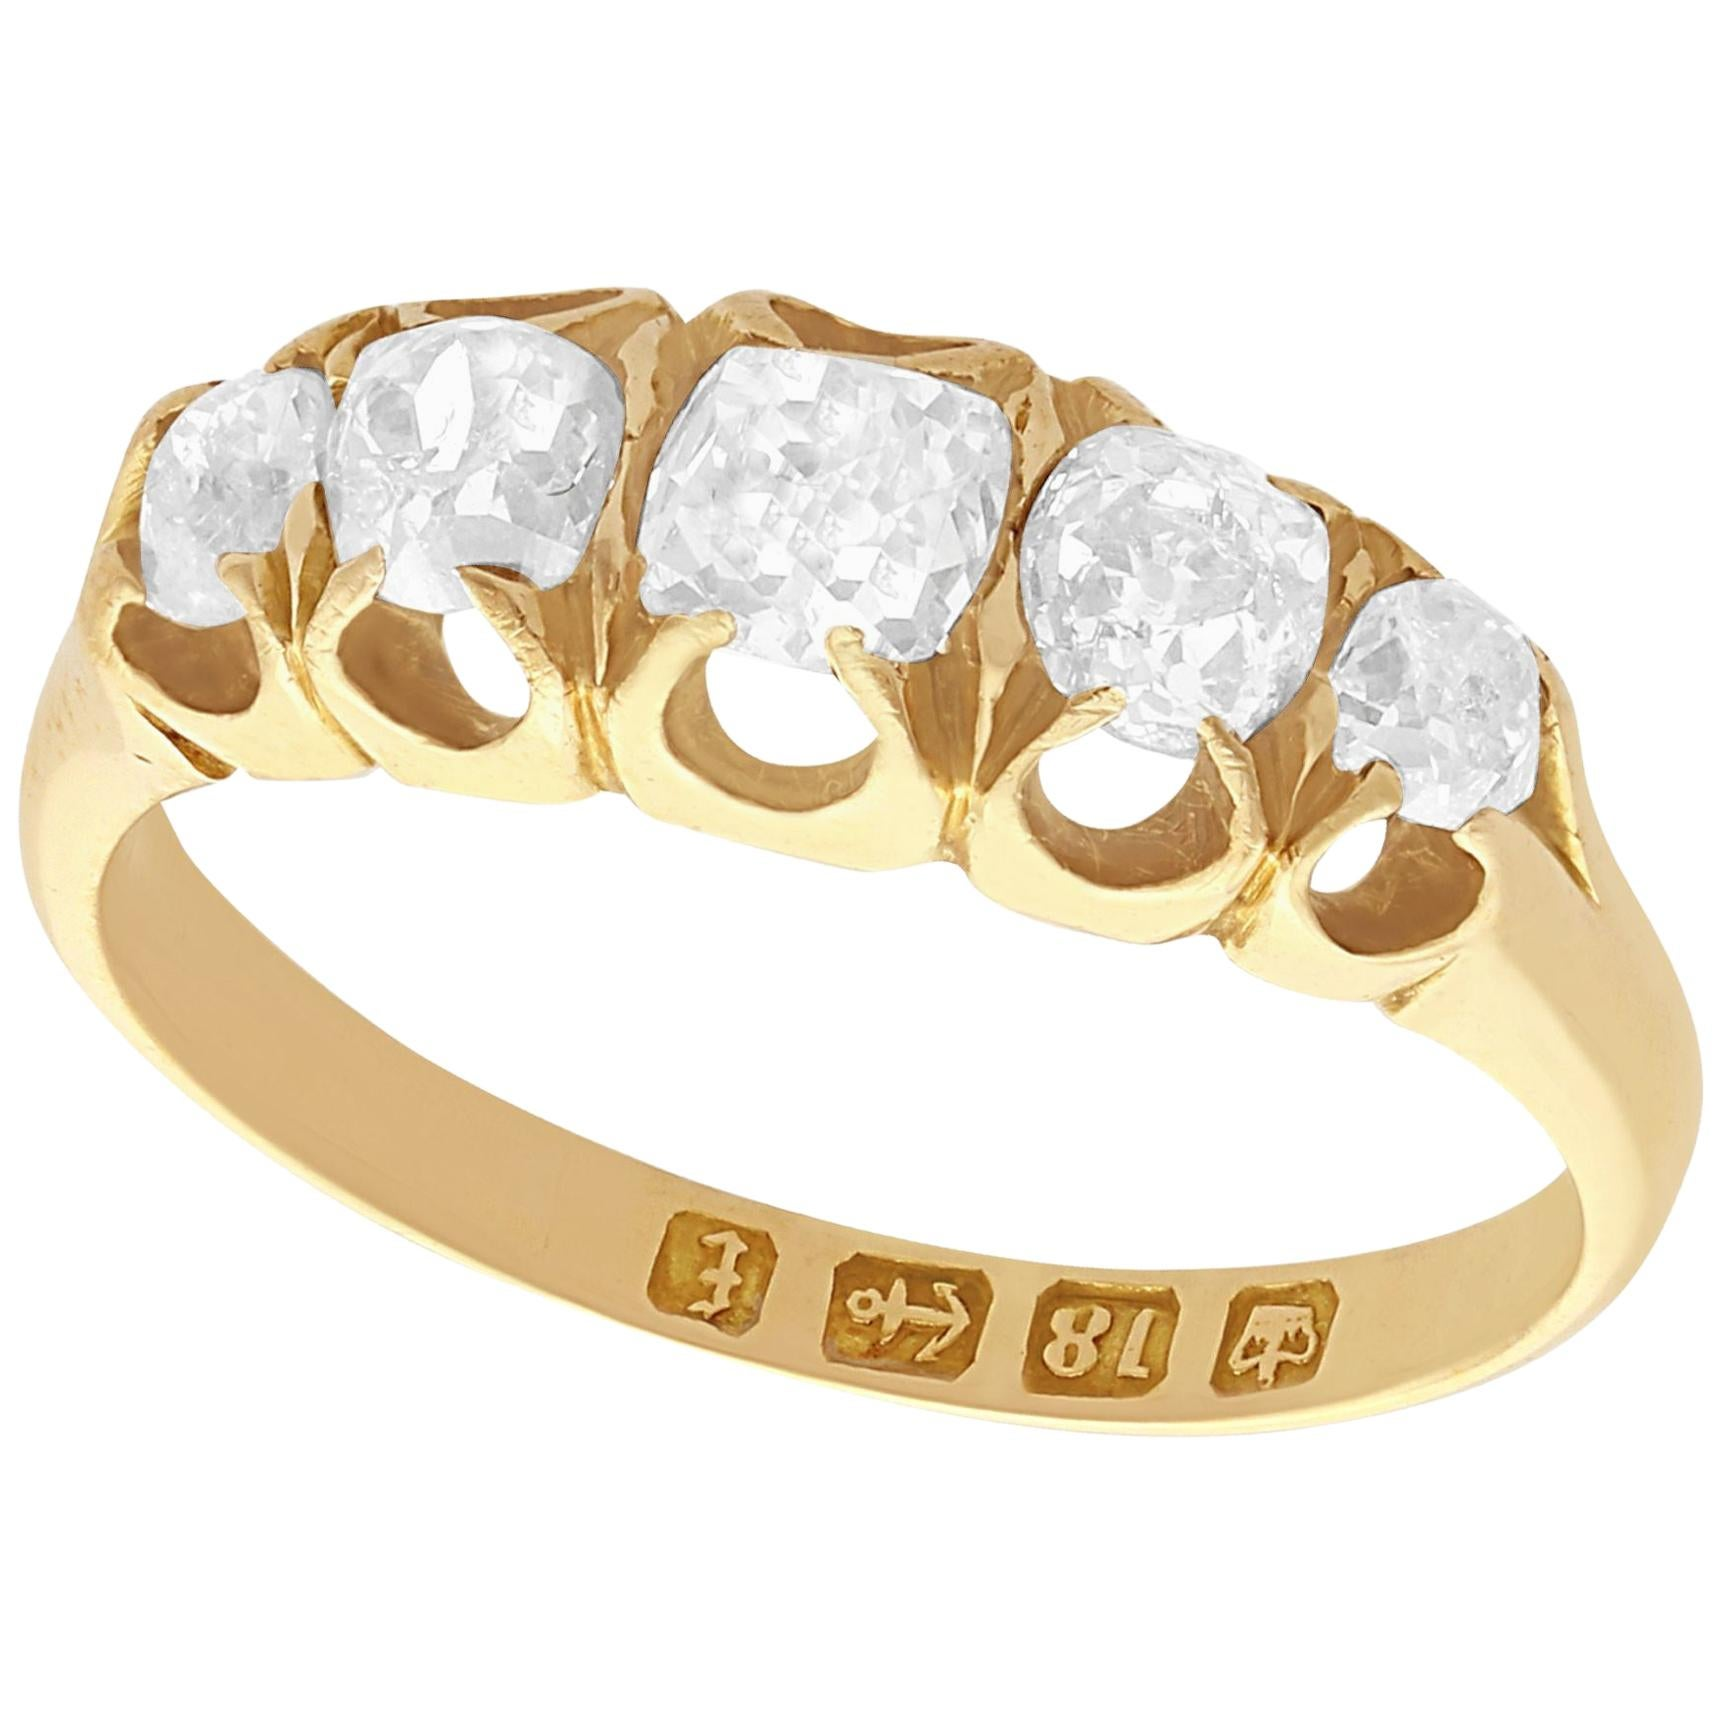 1880 Antique Diamond and Yellow Gold Five-Stone Ring